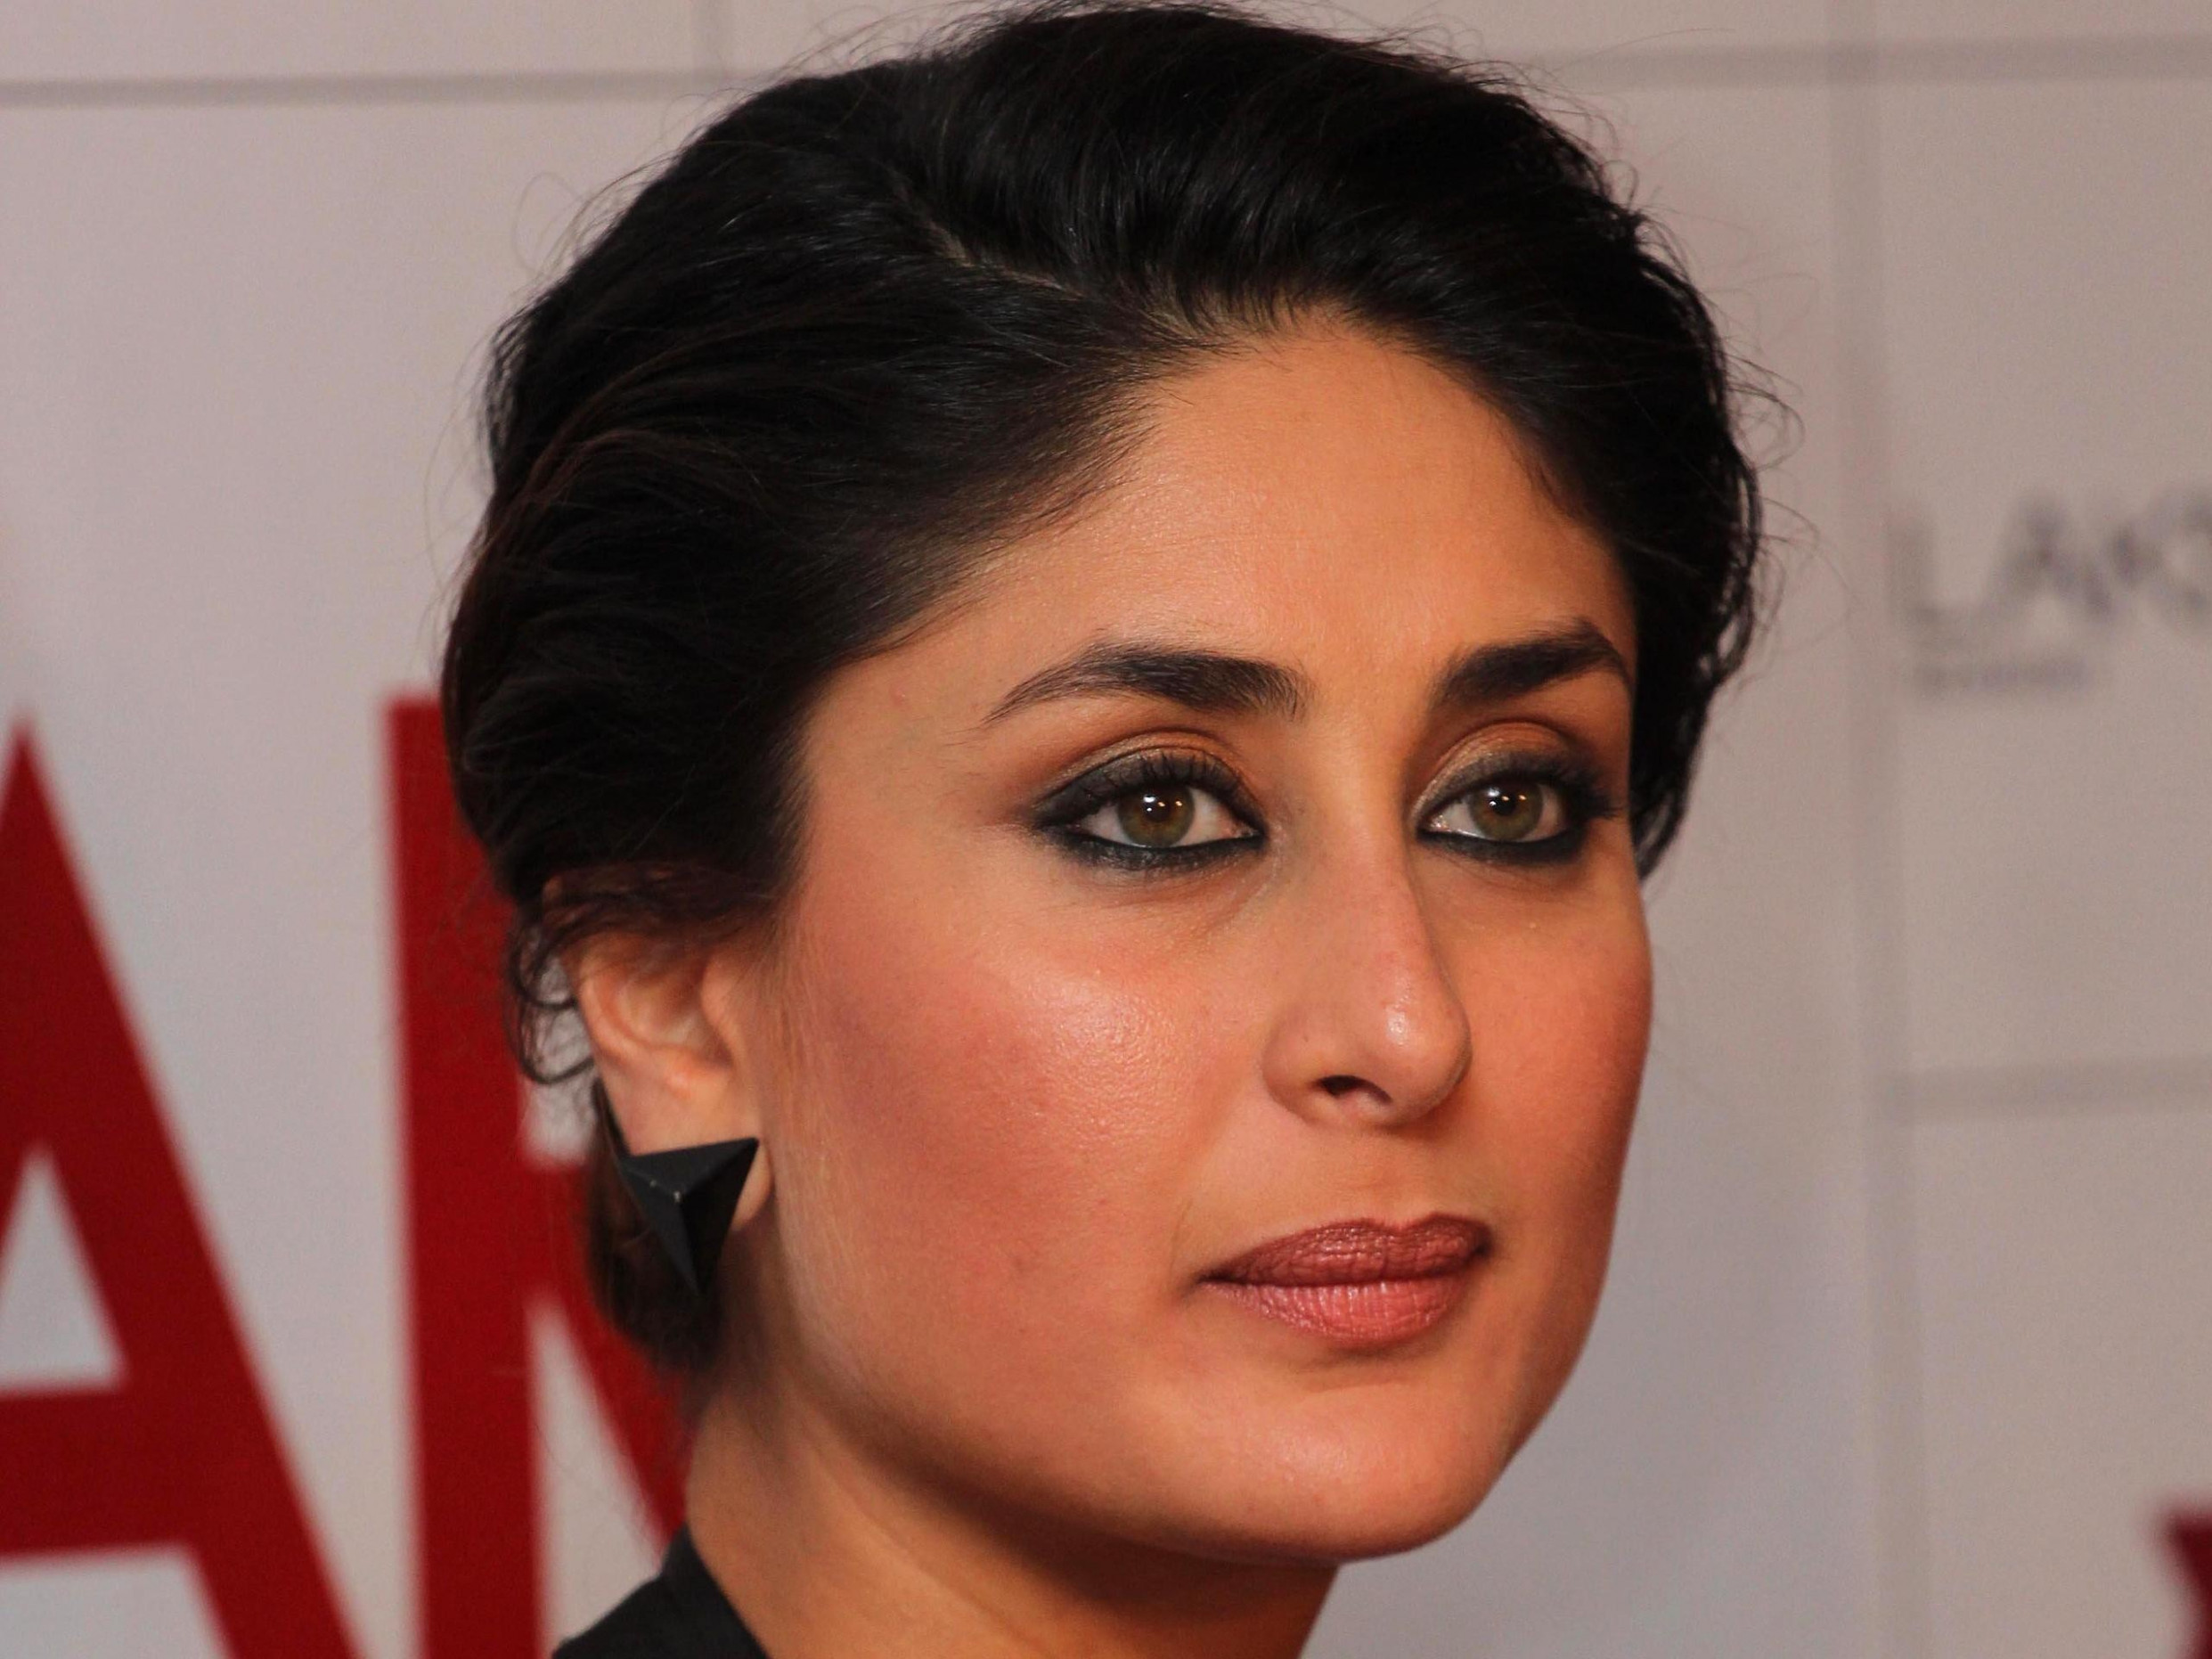 Beautiful Kareena Kapoor Face Closeup Photos | HD Famous ...